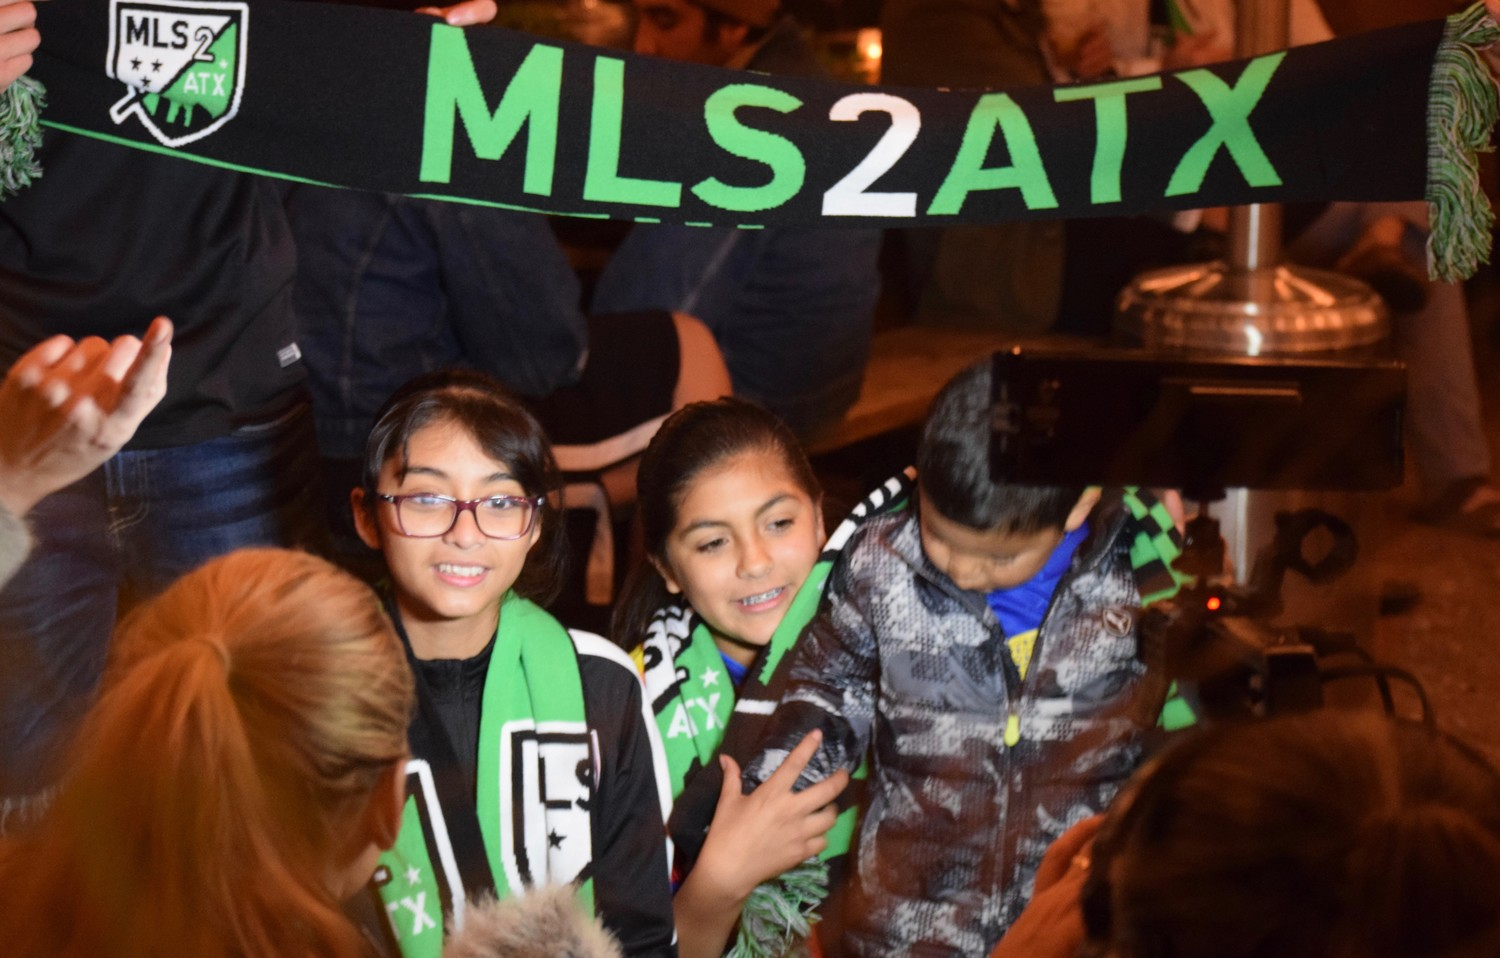 MLS2ATX fans are interviewed at Family Night at Takoba in East Austin on Wednesday.